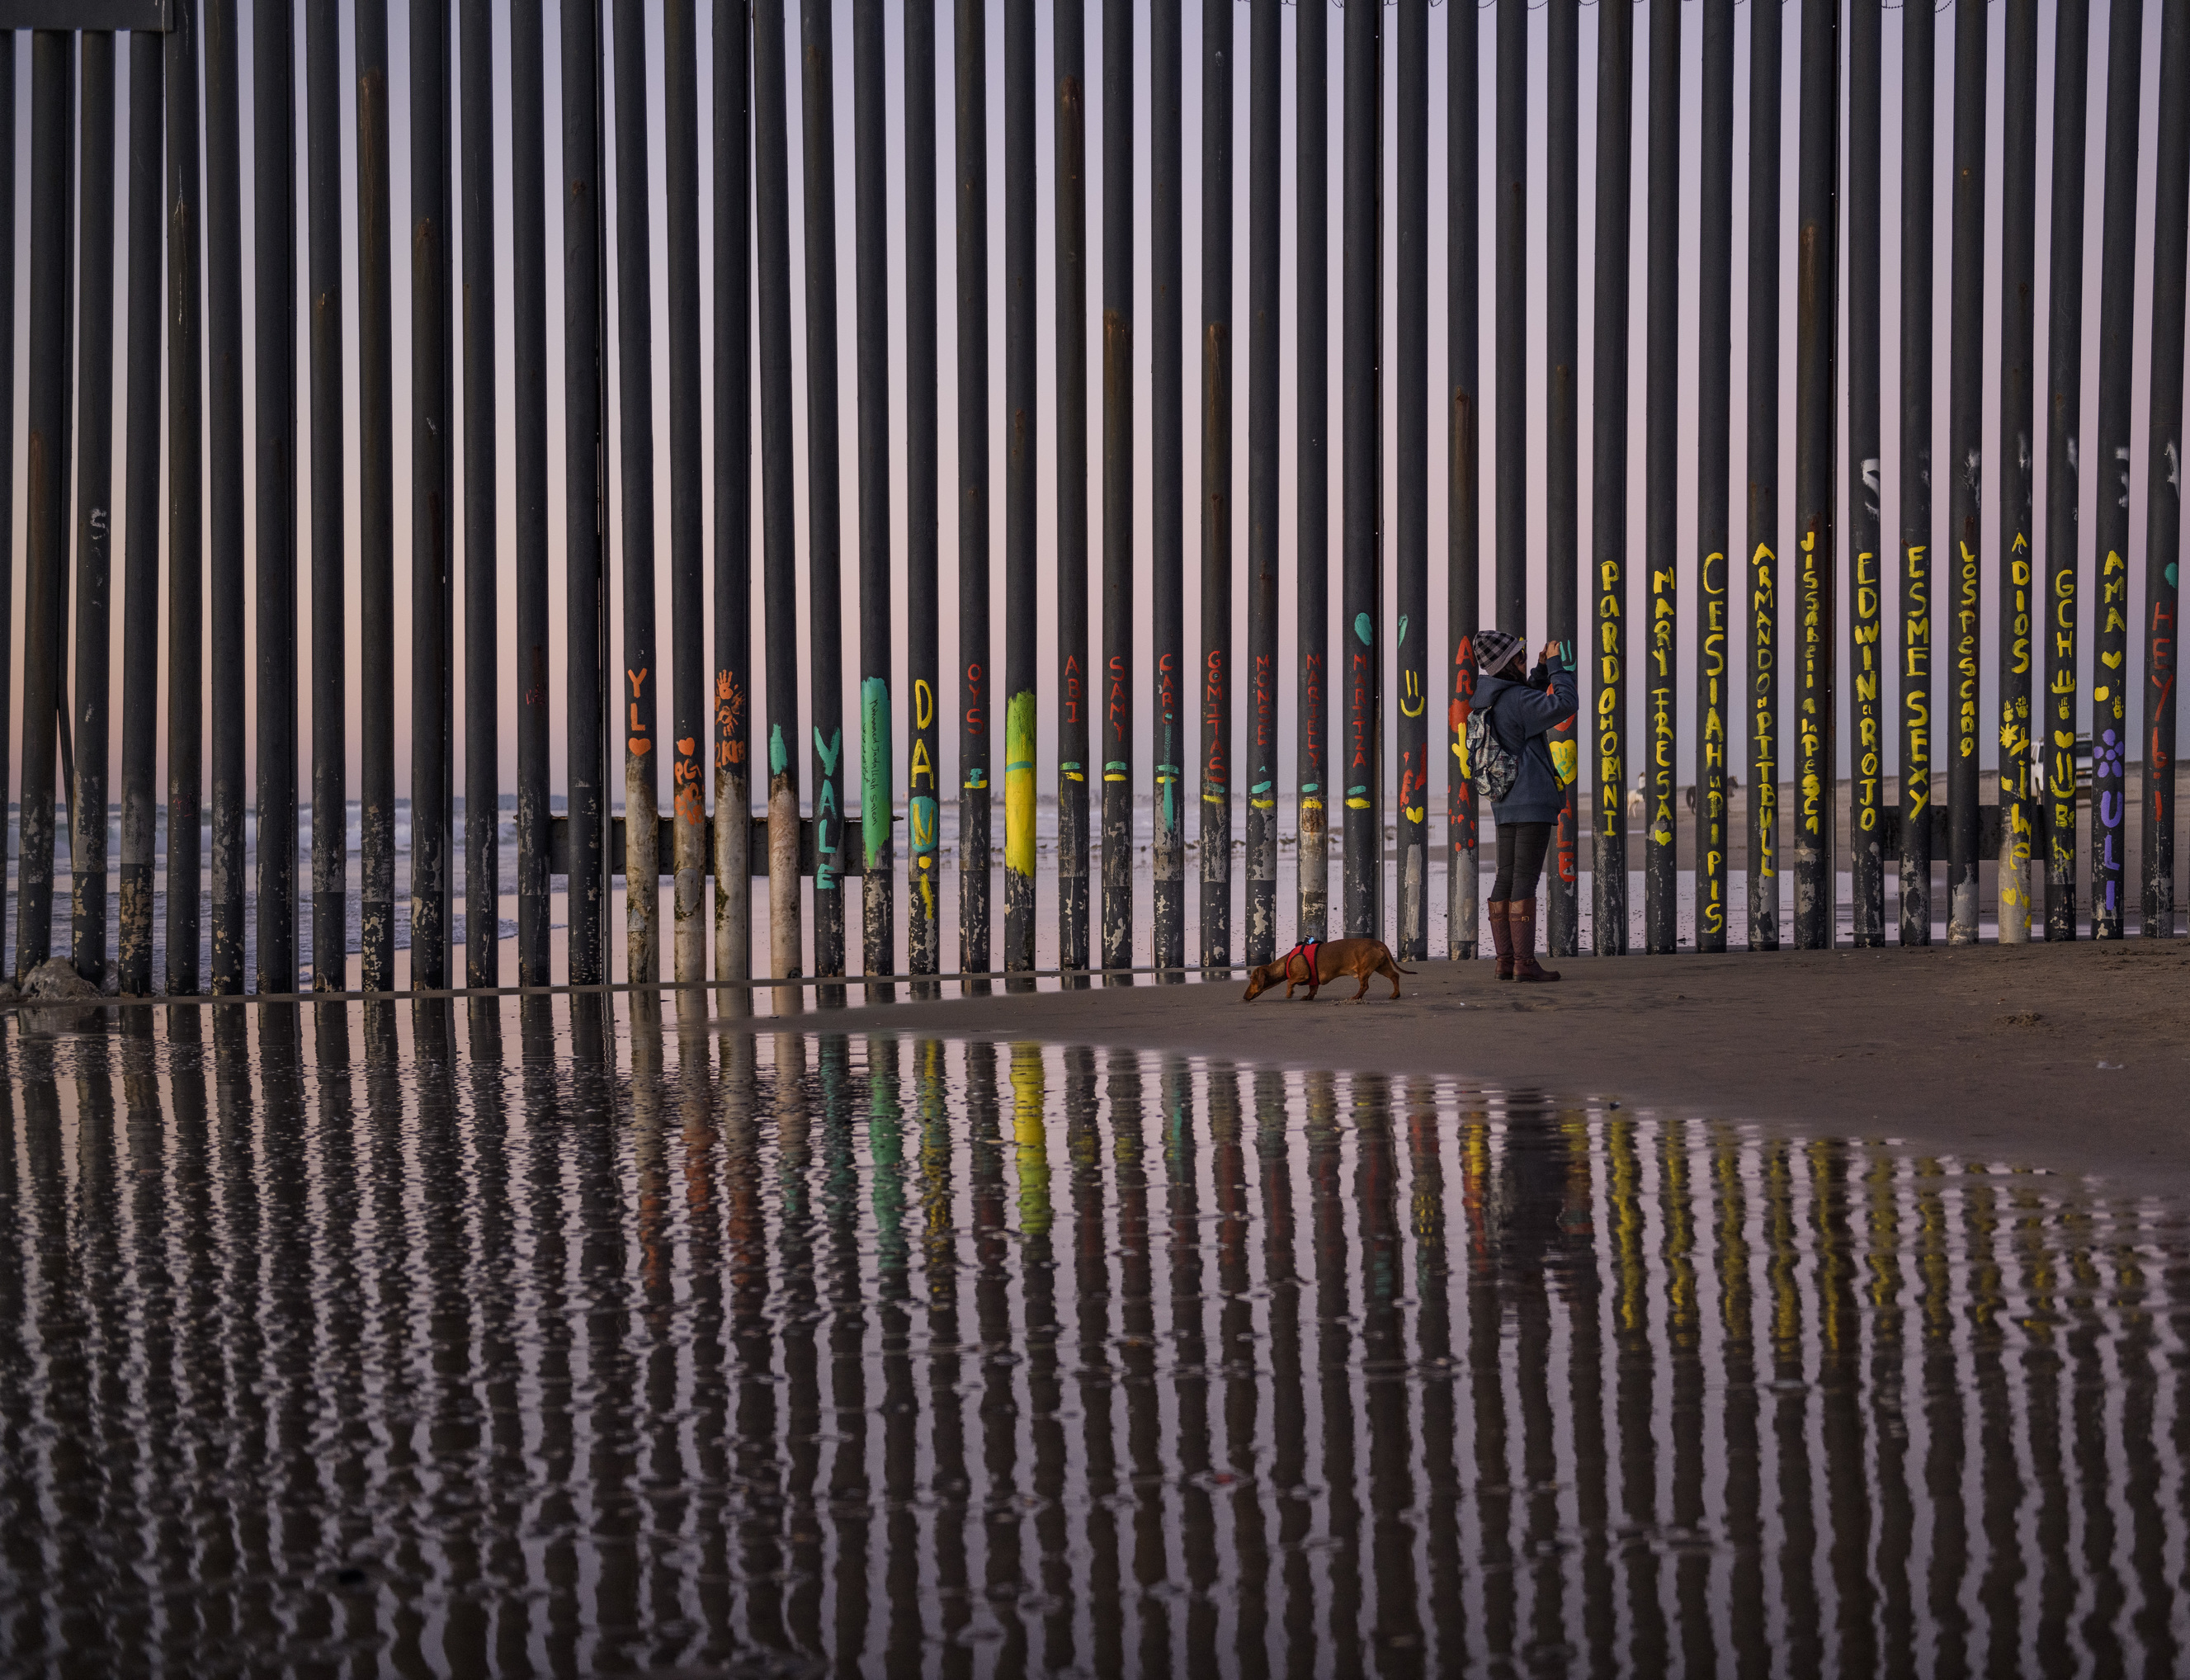 FILE - In this Jan. 3, 2019, file photo, a woman takes a snapshot by the border fence between San Diego, Calif., and Tijuana, as seen from Mexico. (AP Photo/Daniel Ochoa de Olza, File)